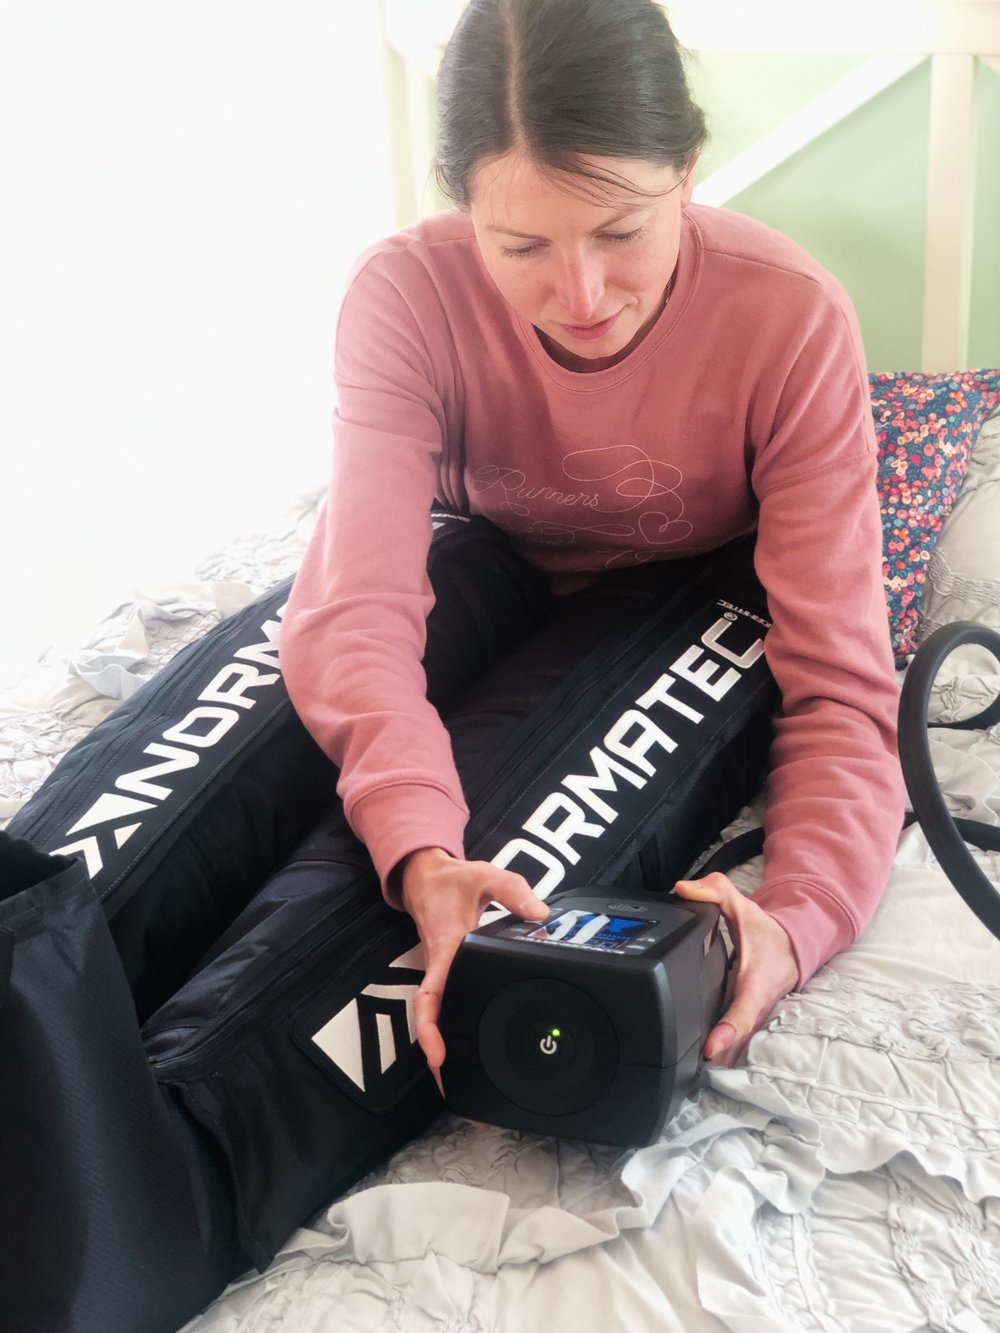 Besides being quite easy to use, NormaTec boots also offer a surprisingly personalized experience: you can adjust settings and zones to meet your preferences.